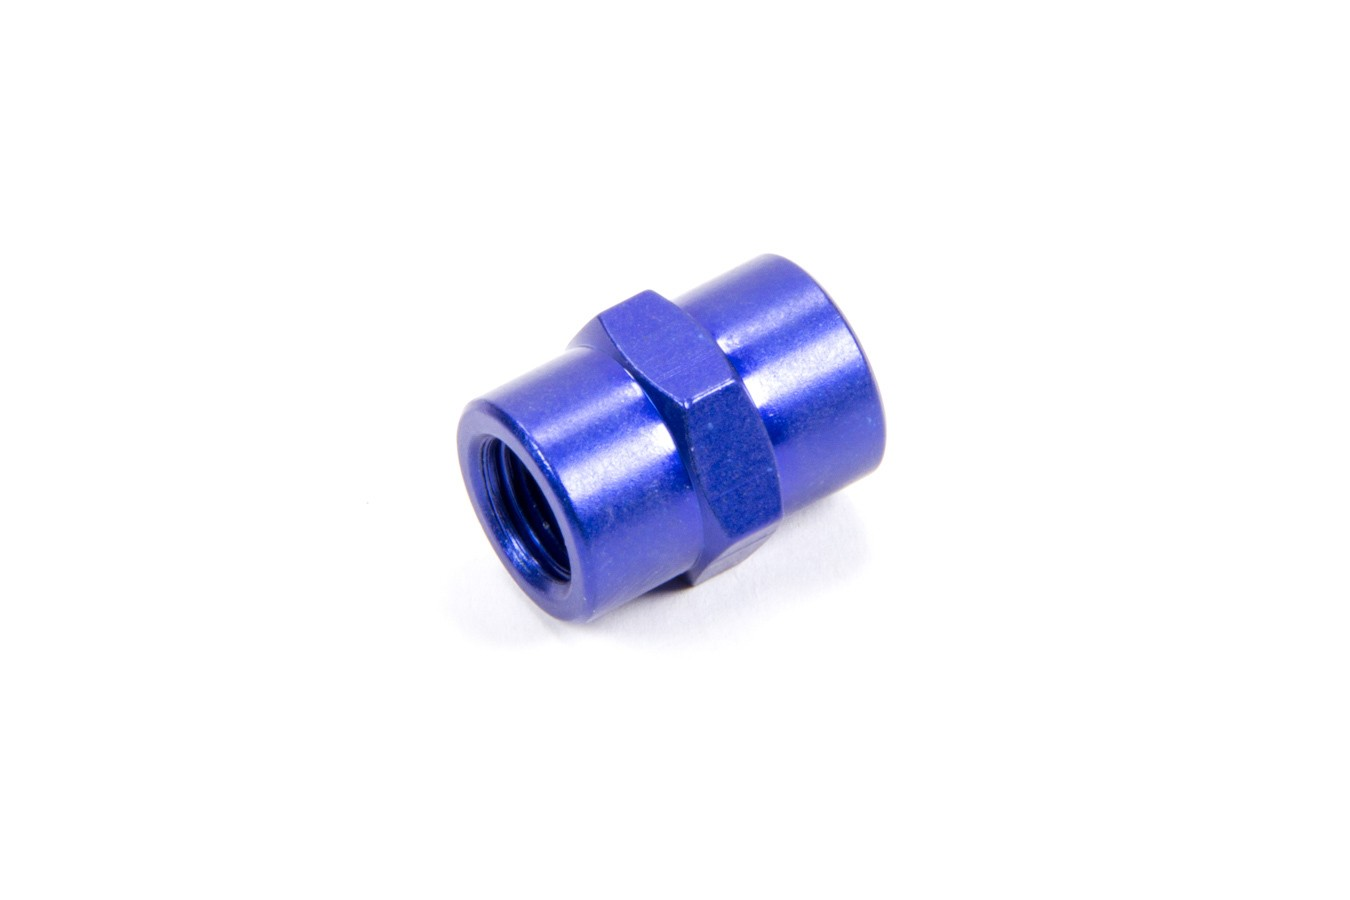 Fragola 491001 Fitting, Adapter, Straight, 1/8 in NPT Female to 1/8 in NPT Female, Aluminum, Blue Anodize, Each